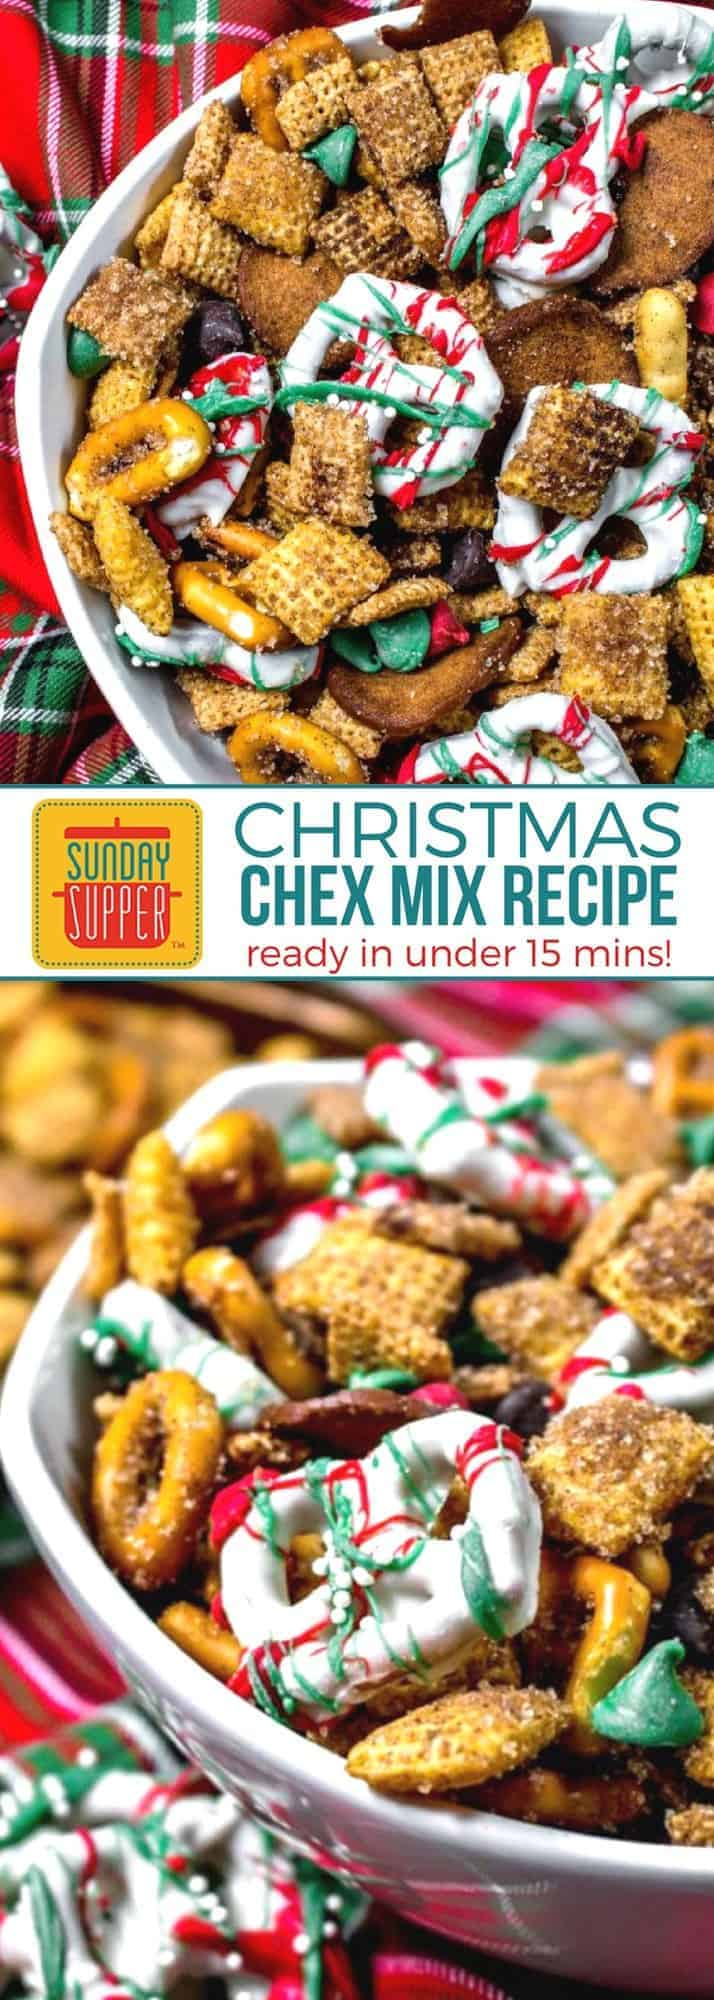 This festive Christmas Chex mix recipe will be your FAVORITE snack this holiday season. Perfect for a homemade food gift & for your buffet menu ideas too! During the holidays we all need a few simple recipes to fall back on to make entertaining friends and family just a little easier. This Christmas Chex is PERFECT for holiday parties or sharing with family and friends, and it takes less than 15 minutes to make! #SundaySupper #HolidayRecipes #ChristmasRecipes #EasyRecipe